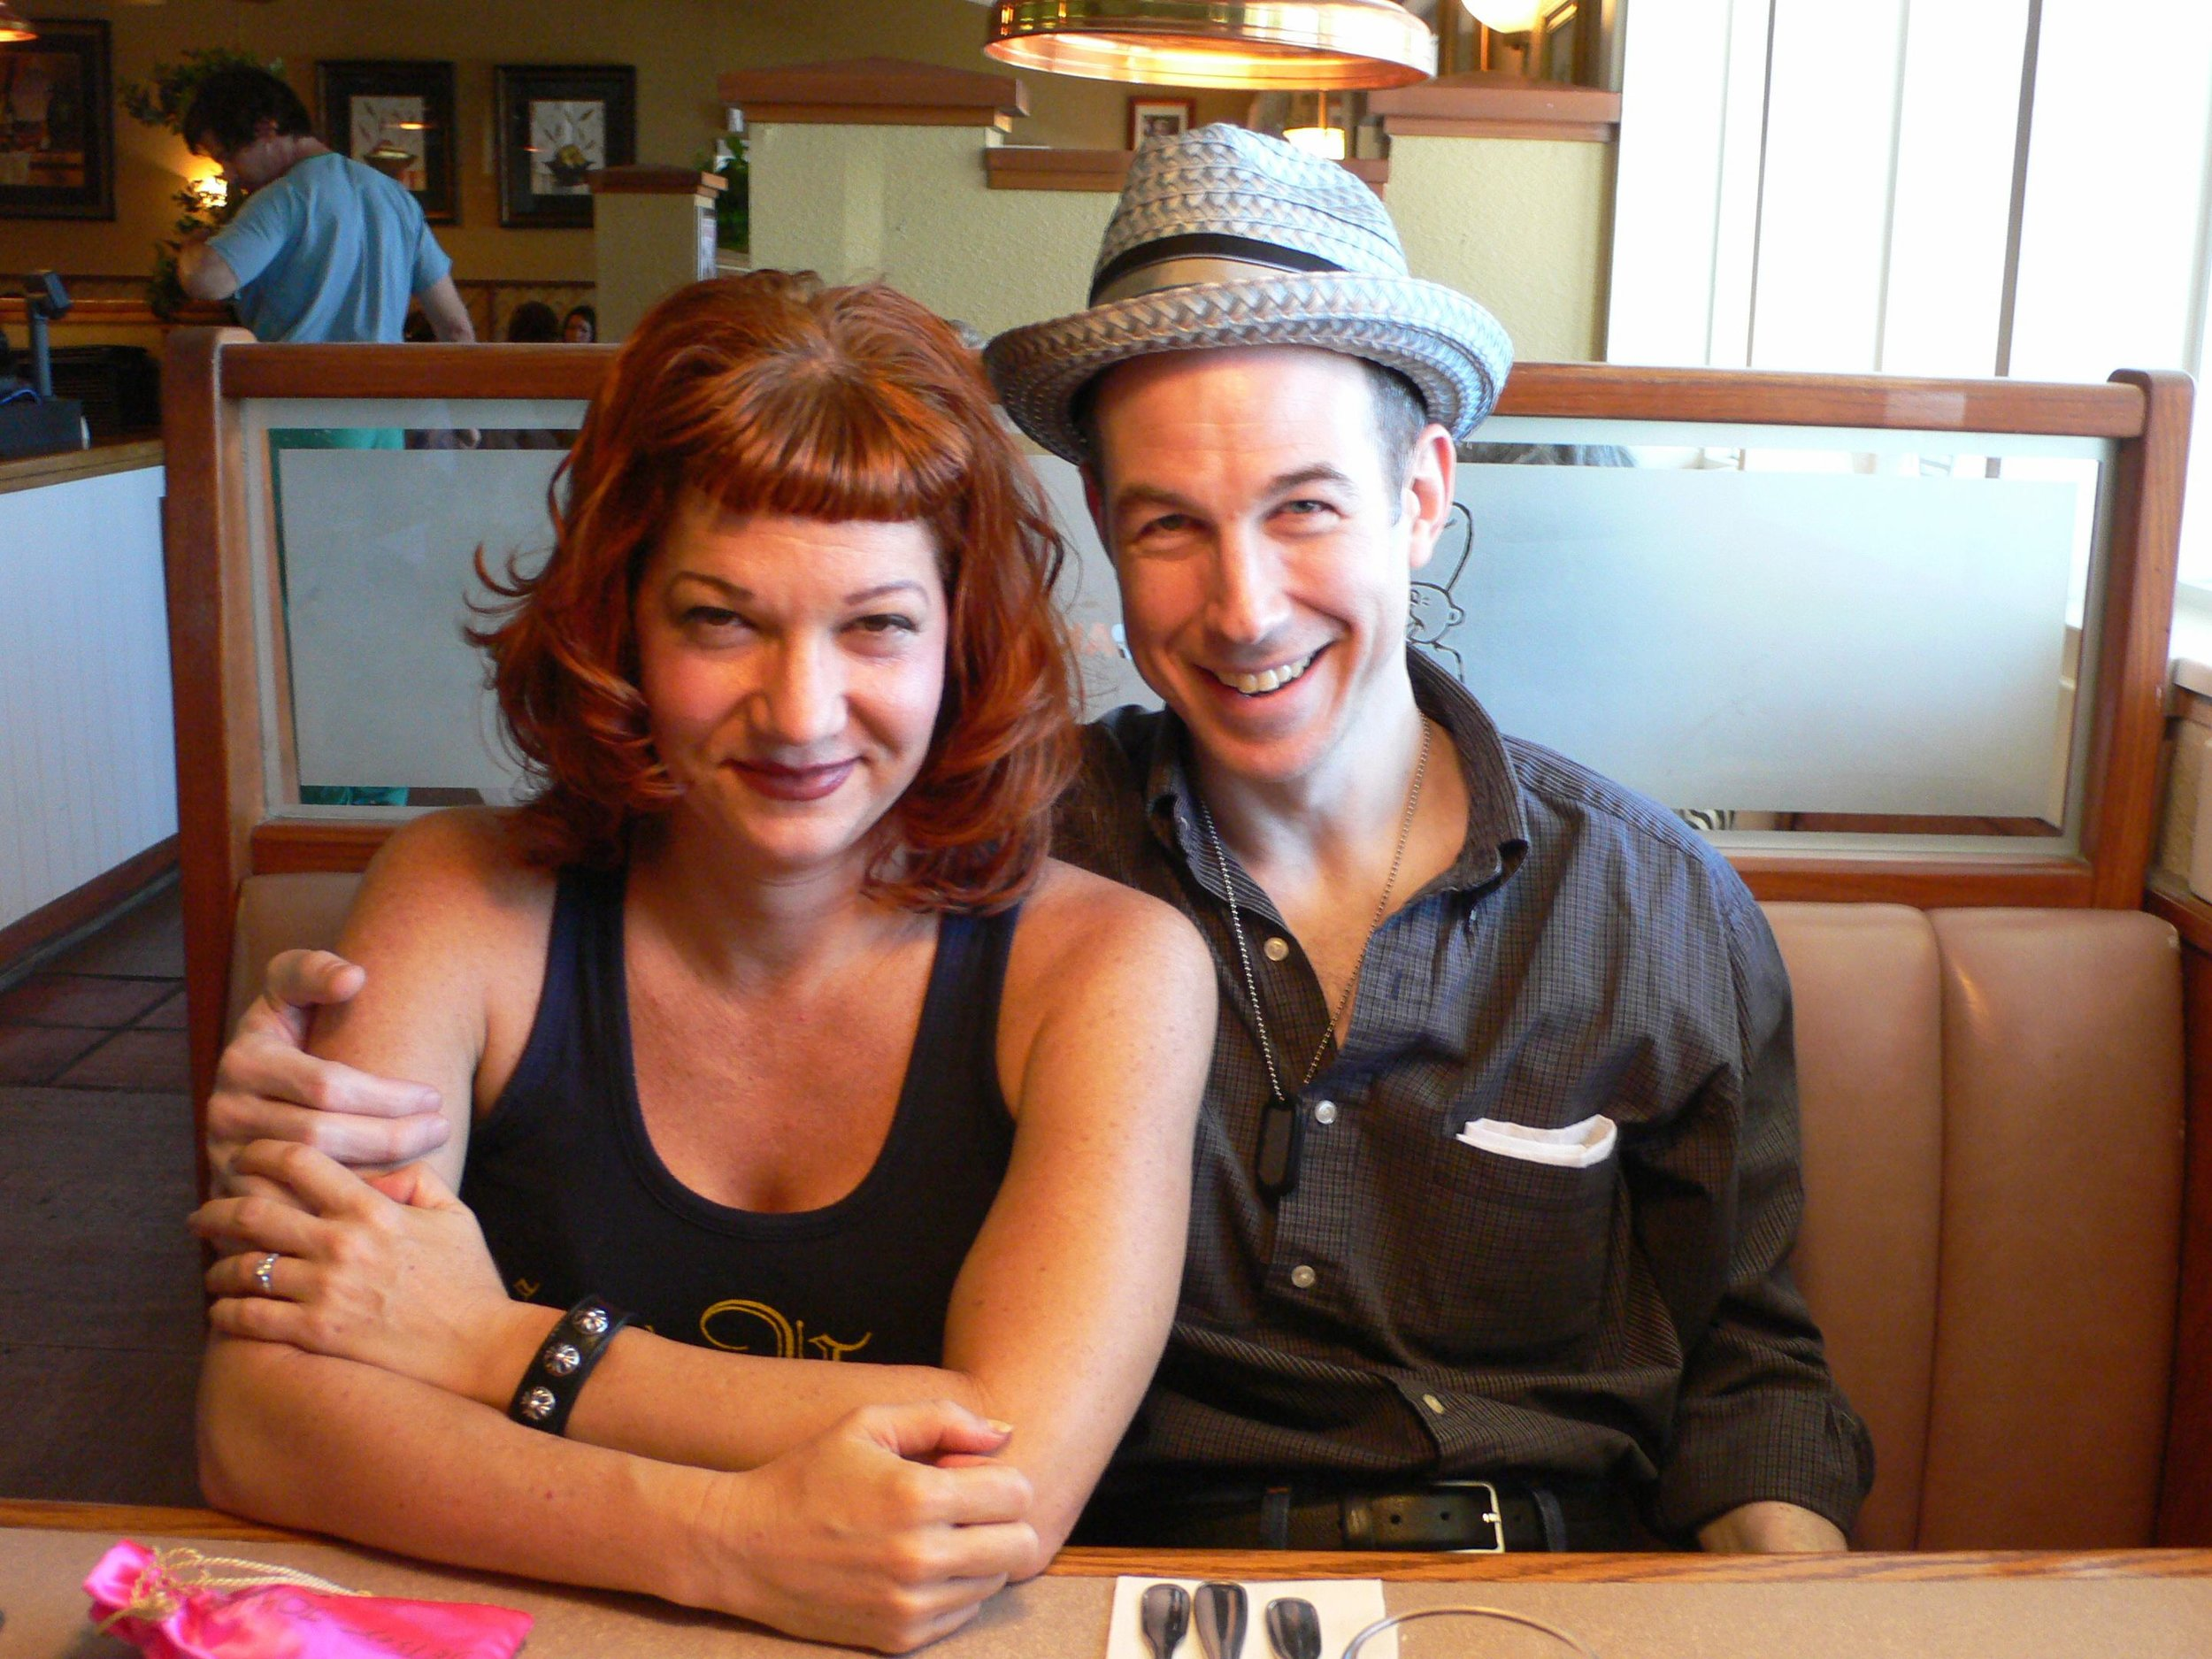 Fabulous Dixie Laite and her adorable husband, Jeff who found love in their forties. Dixie likes to give Jeff trophies for being an awesome husband.